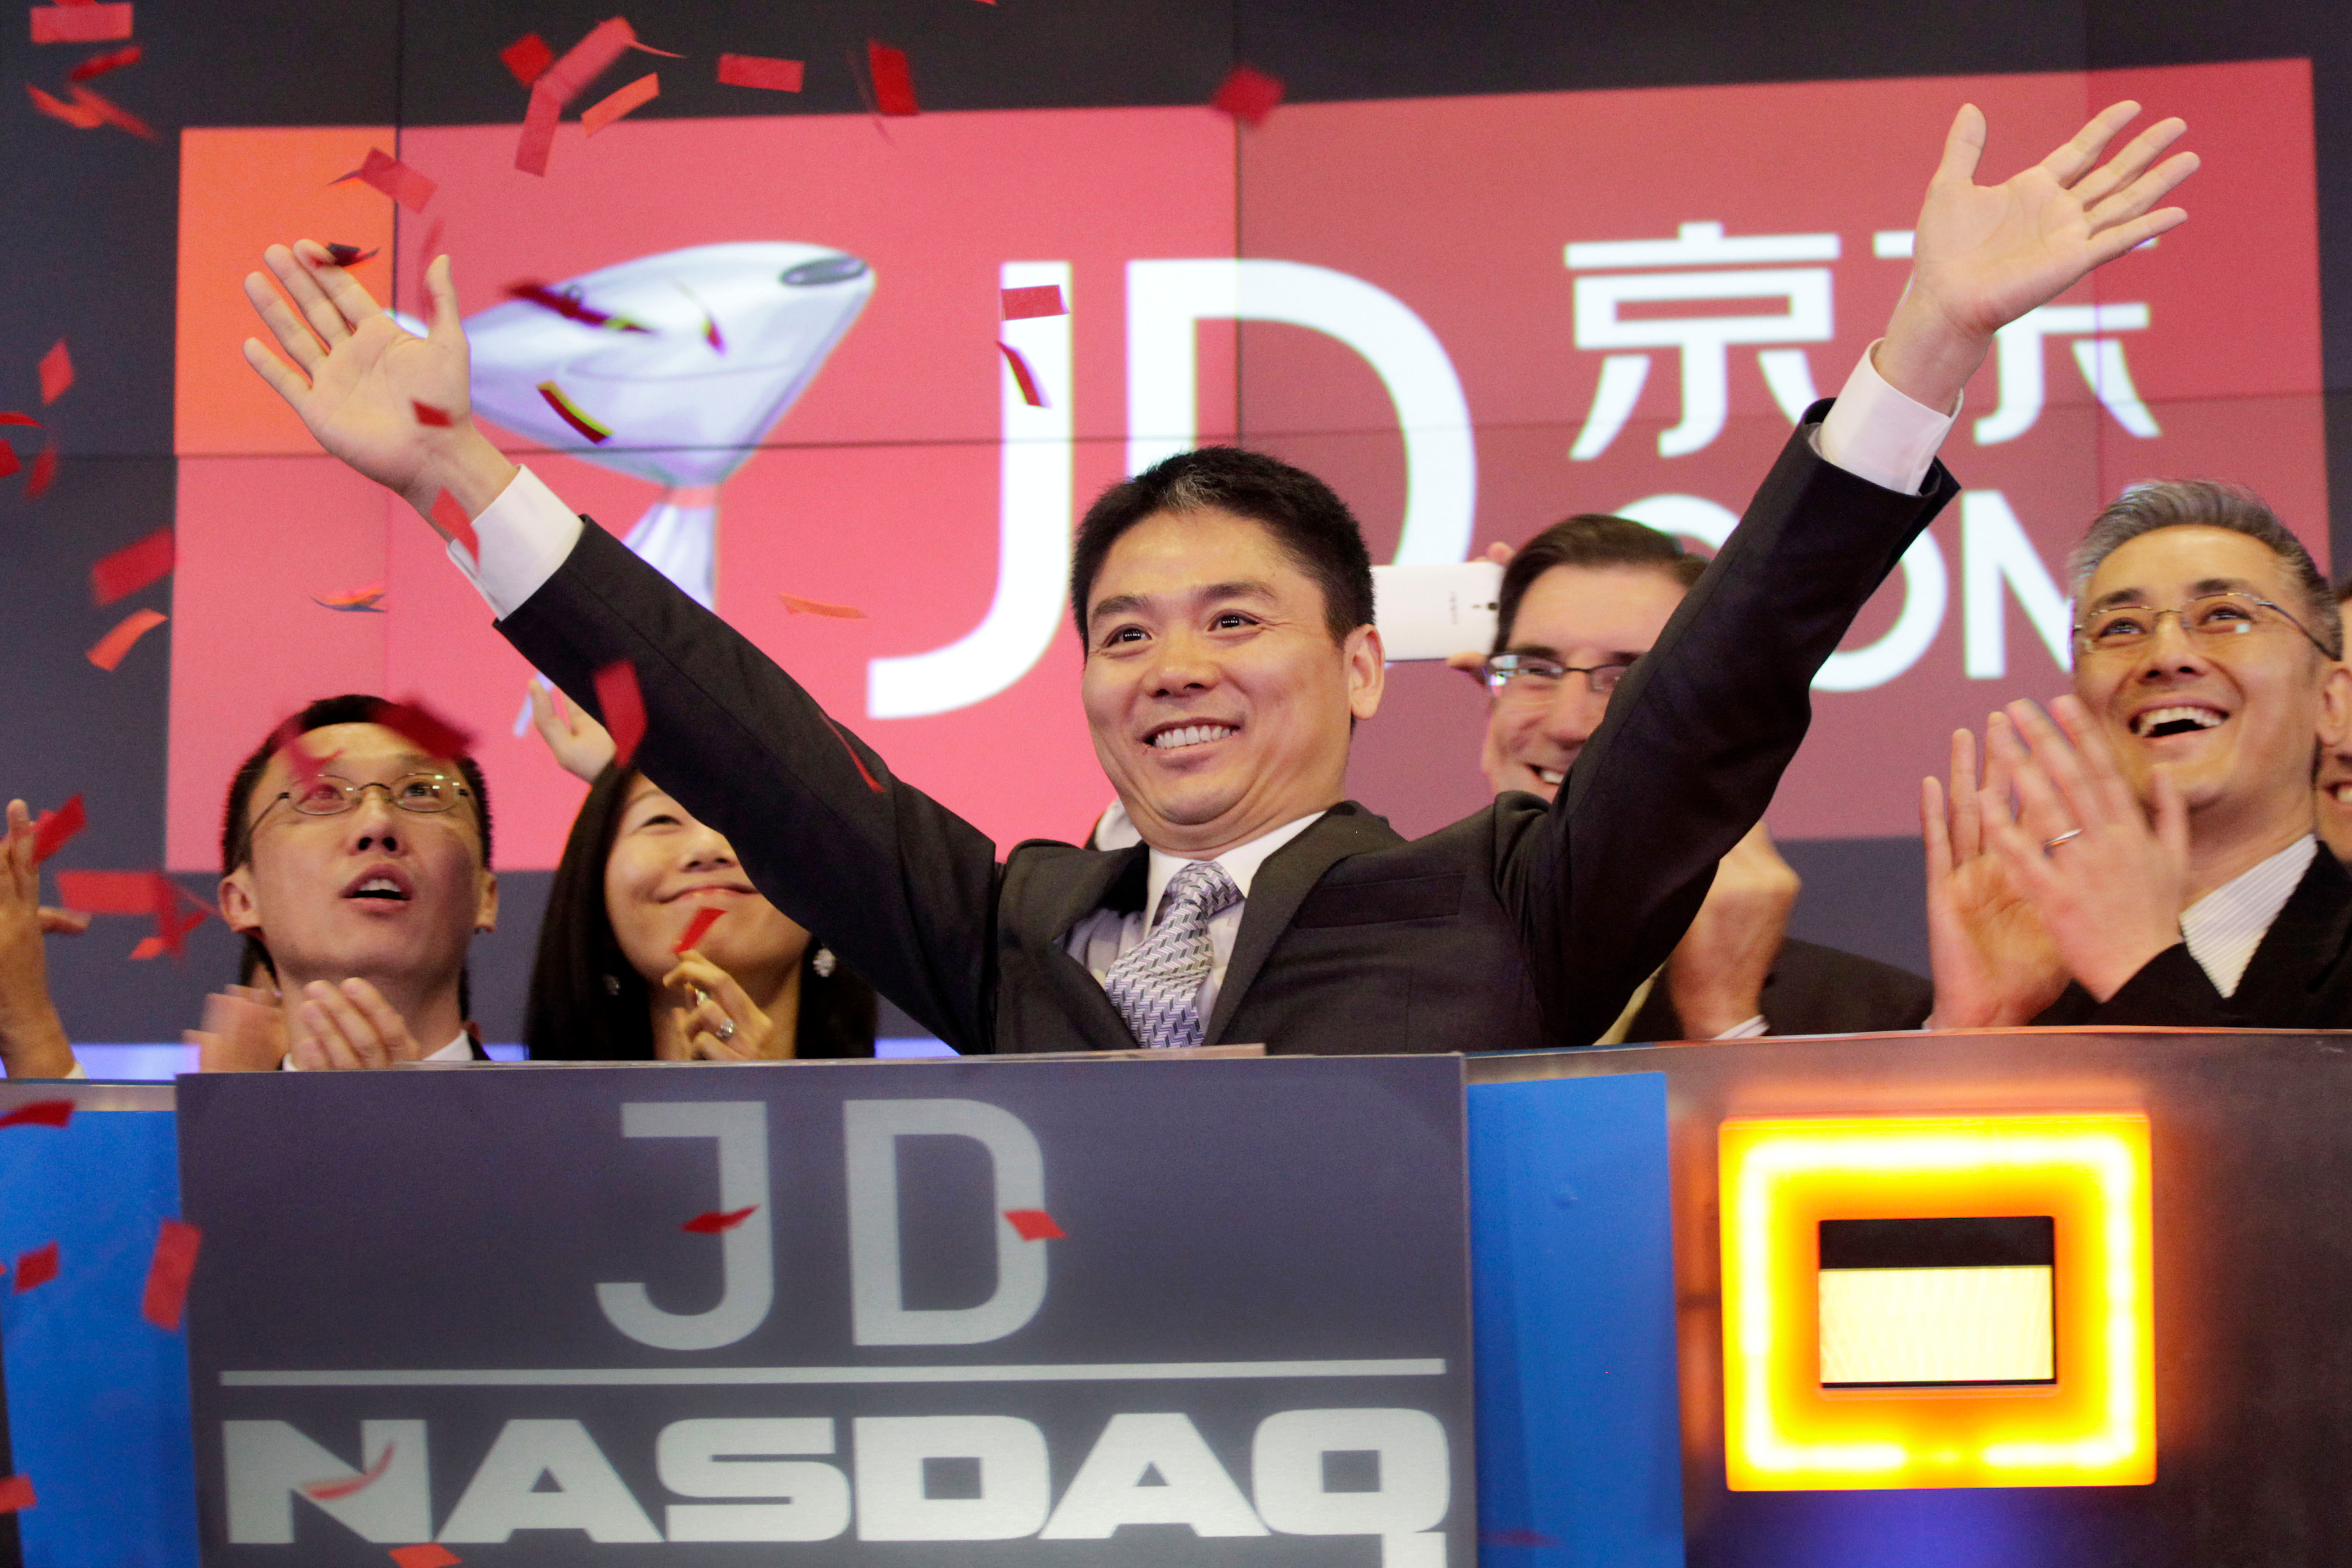 Richard Liu, CEO of JD.com, raises his arms to celebrate the IPO of his company in New York.